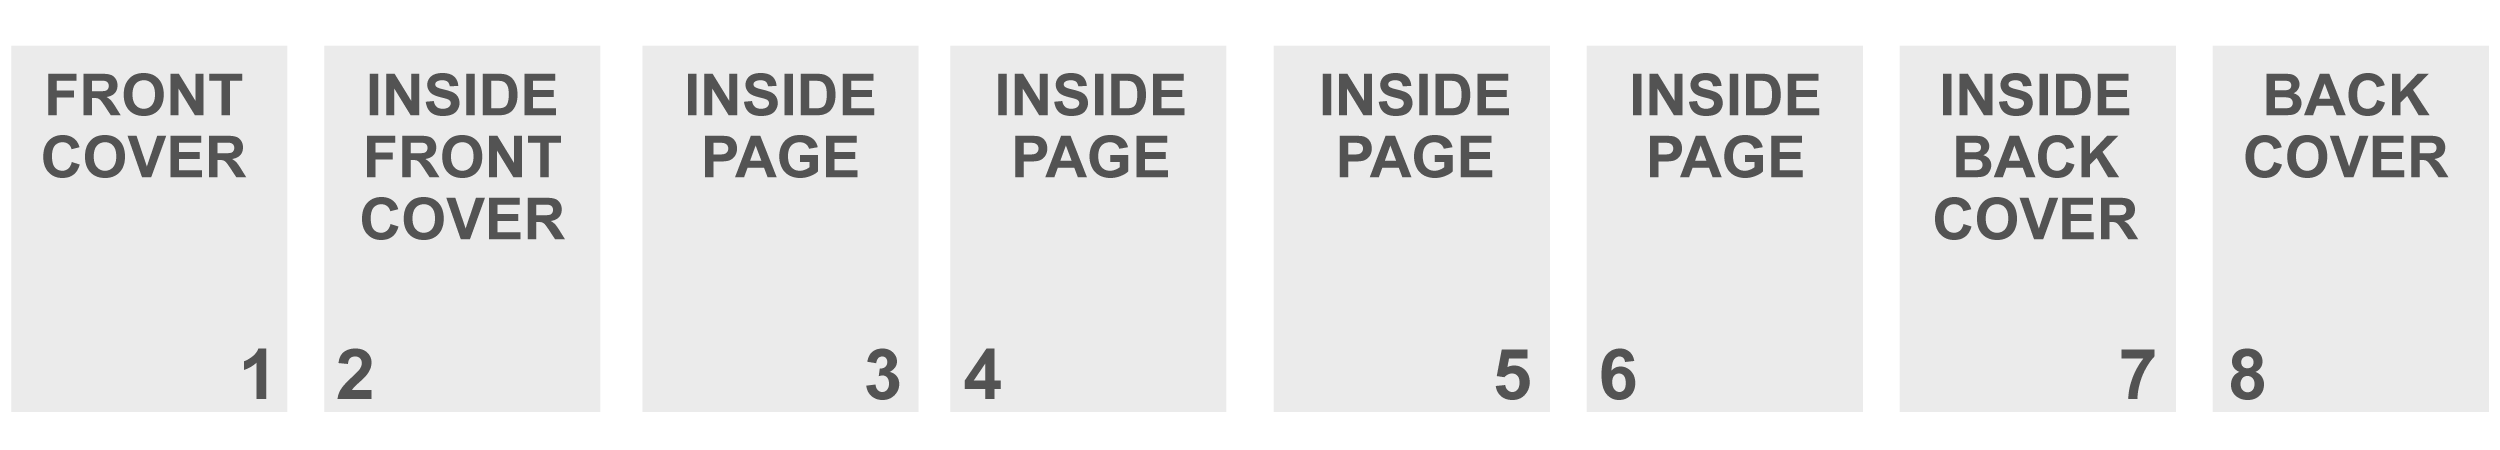 Upload your program pages in this order